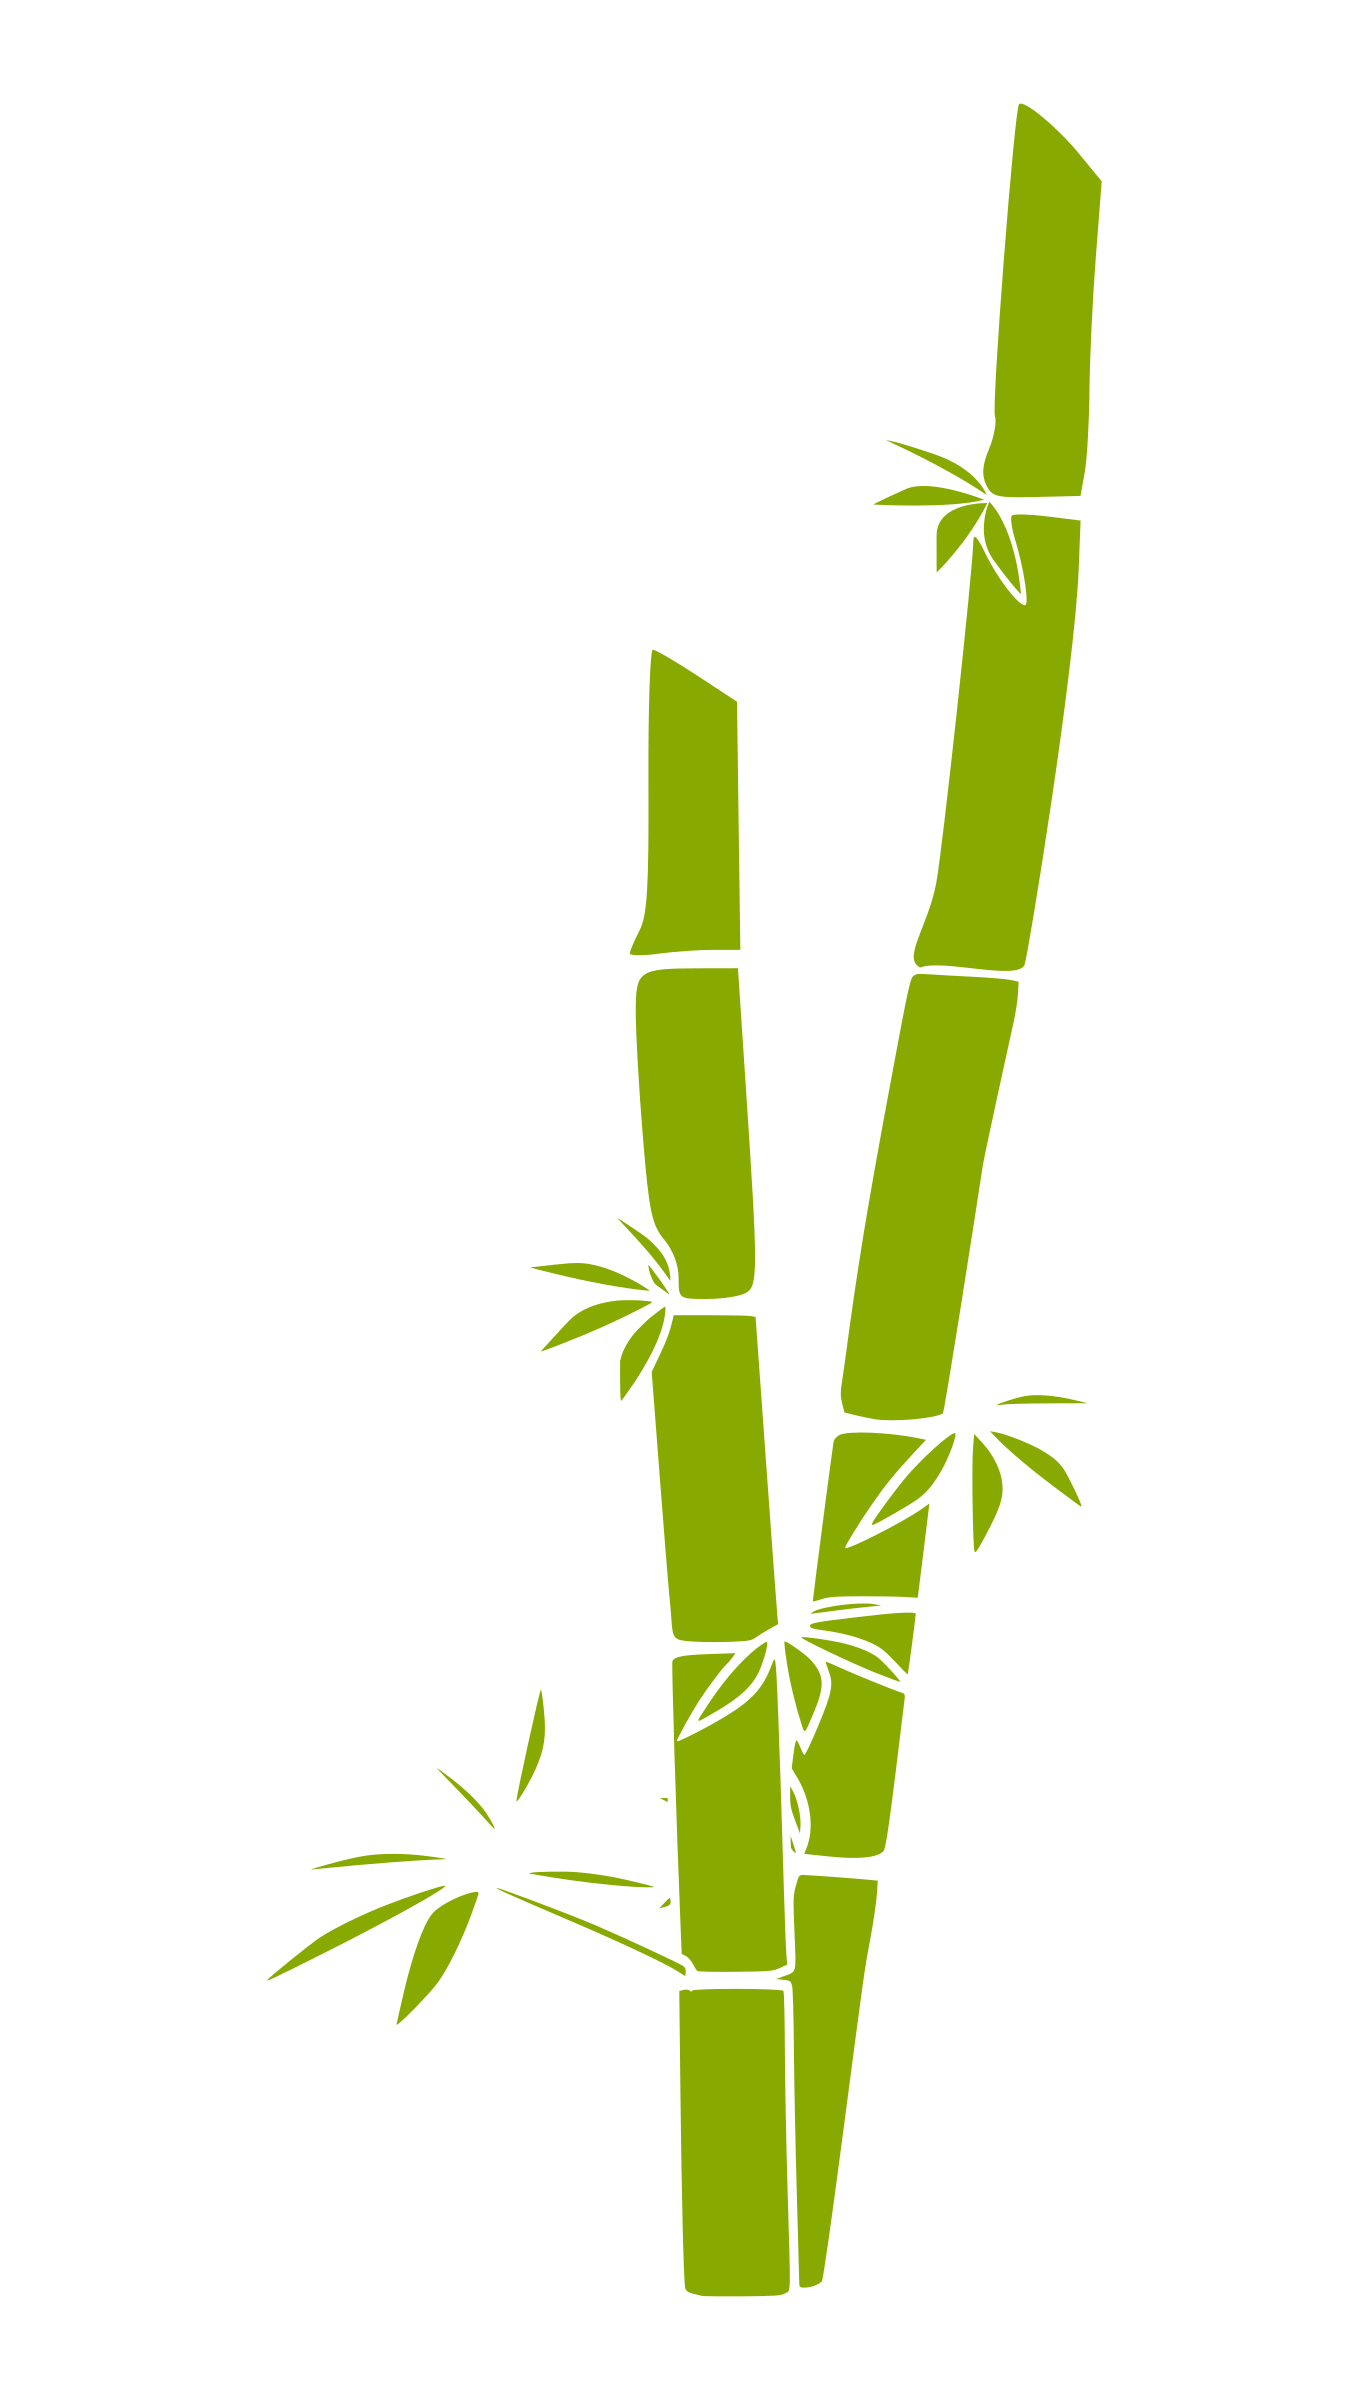 Bamboo clipart silhouette. Big image png